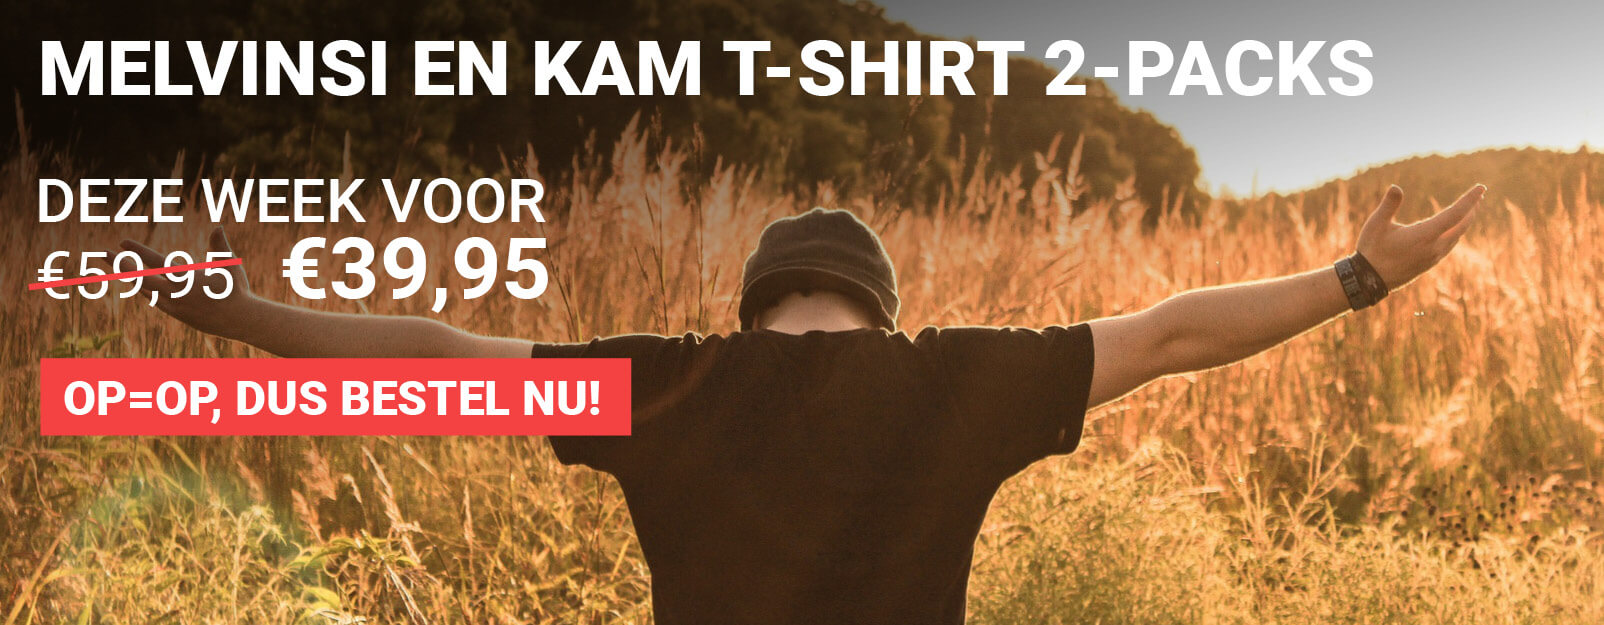 Melvinsi en KAM T-shirt 2-packs, voor €39,95!